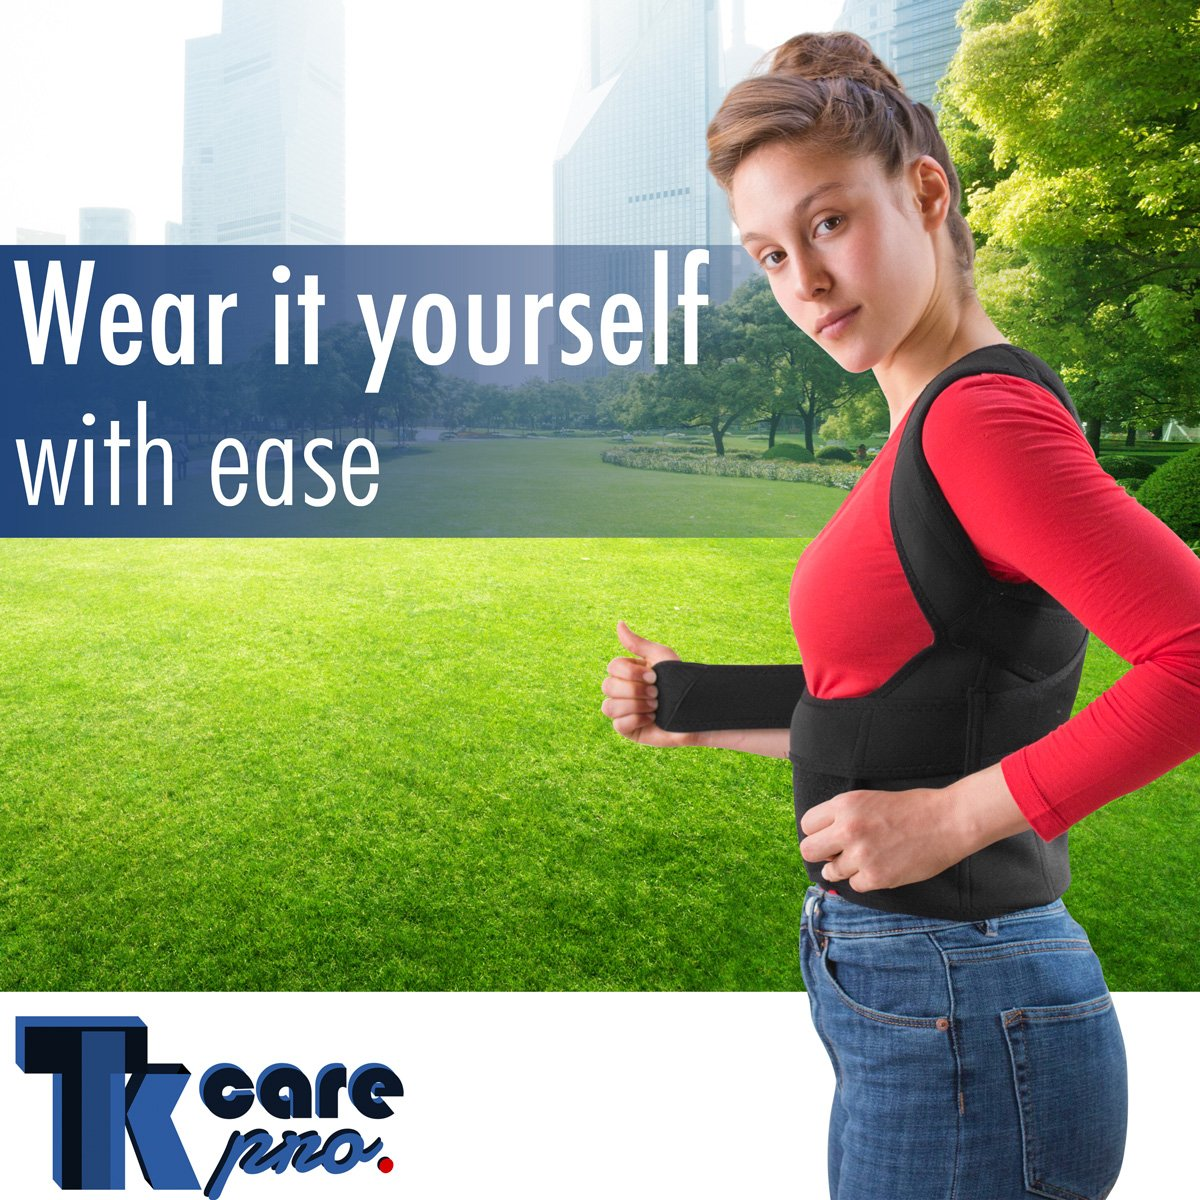 THE ULTIMATE Posture Corrector for Women & Men Under Clothes   Effective & Comfortable   Back Brace for Slouching & Hunching -Shoulders Clavicle Support   Upper & Lower Back Supports   Body Therapy by TK Care Pro. (Image #6)